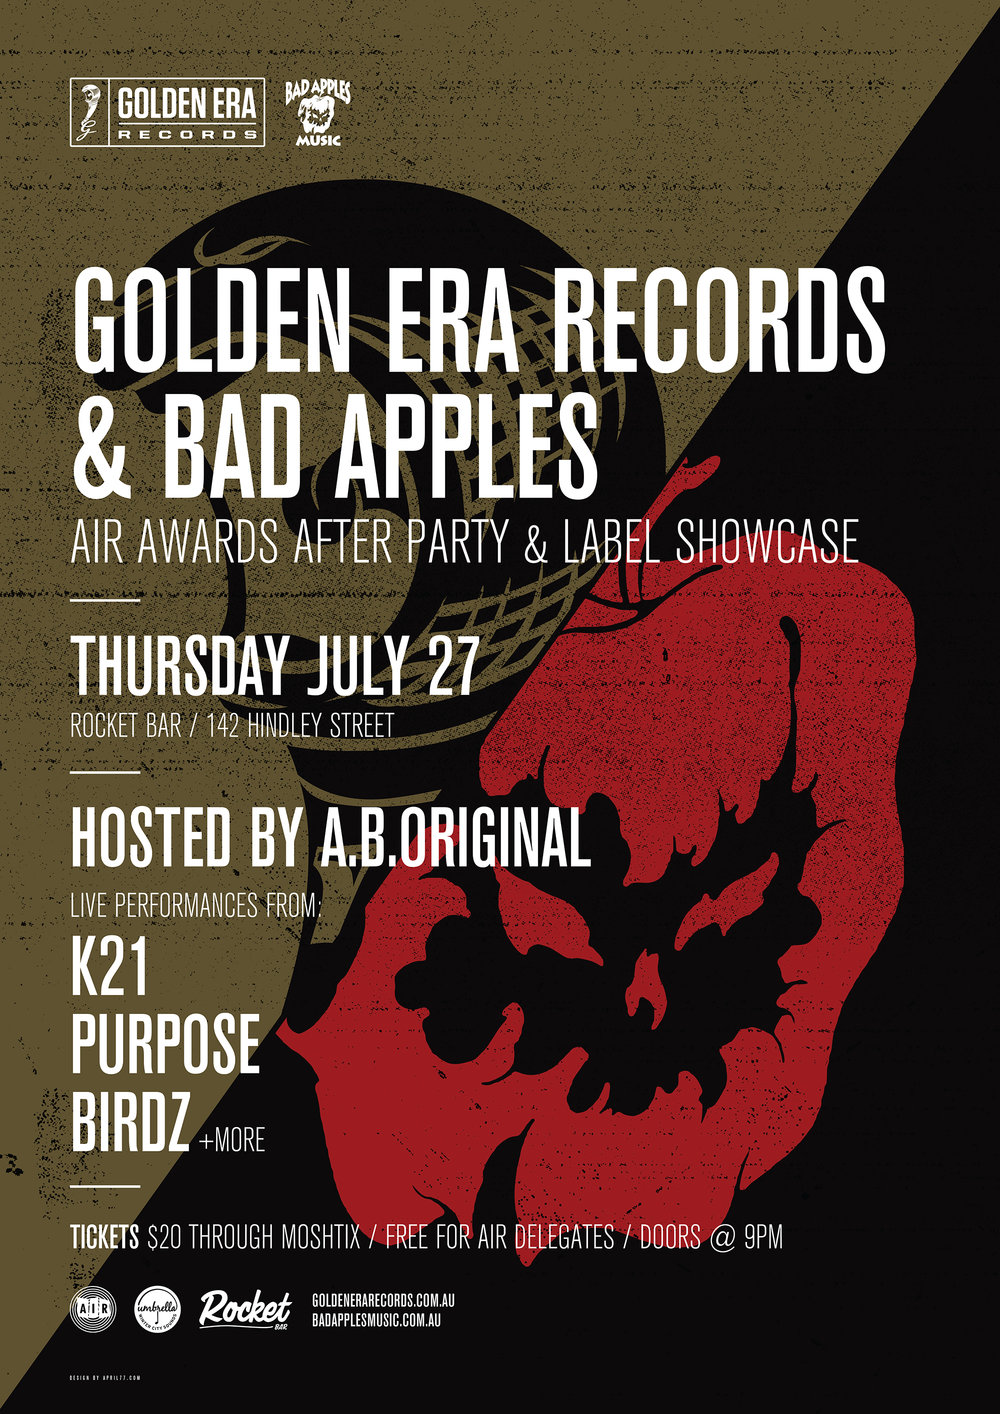 GE039 - AIR Awards After Party Golden Era x Bad Apples Showcase A2 Poster.jpg